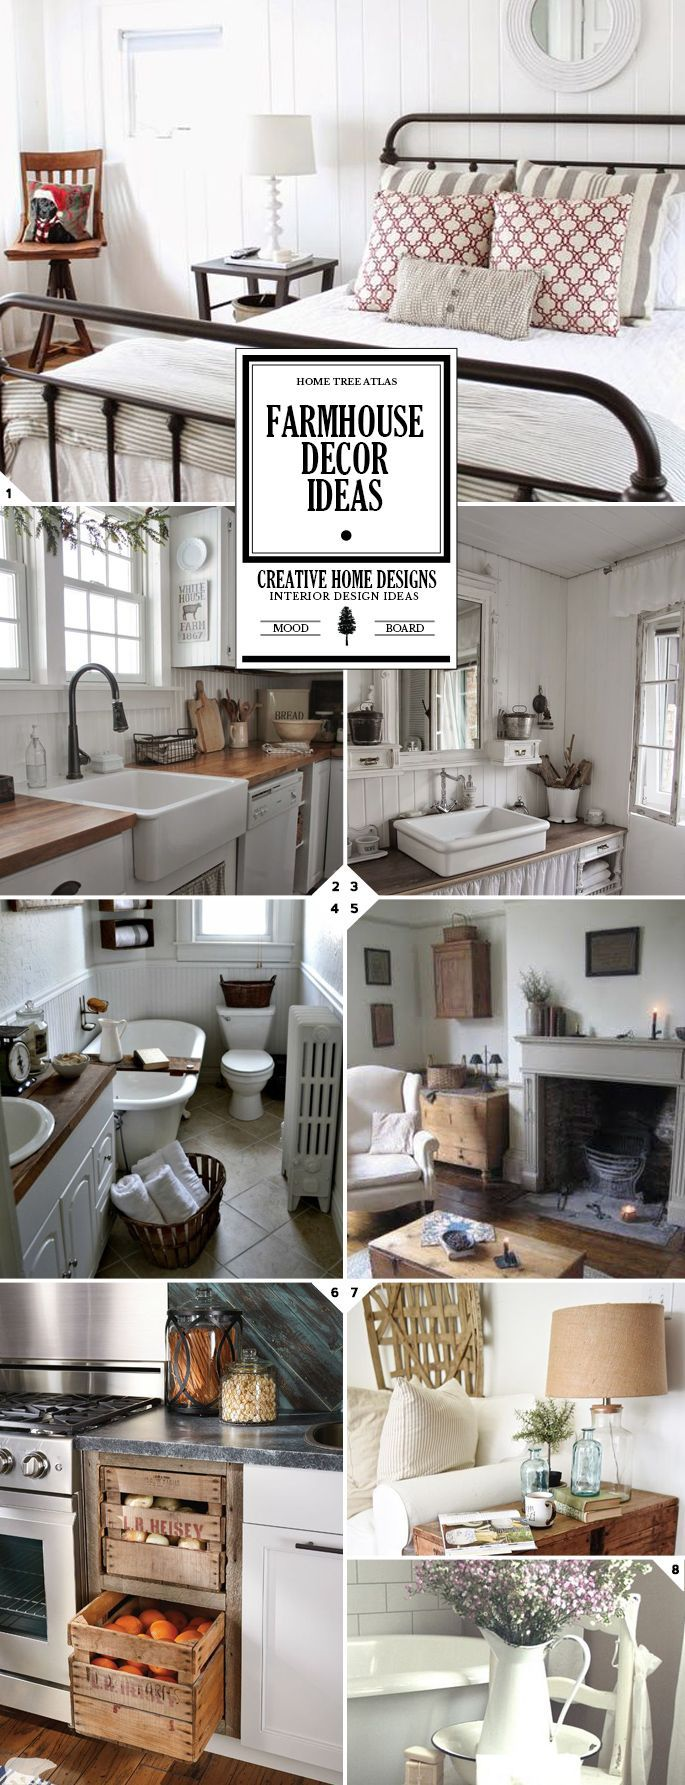 Farmhouse kitchen kitchen design decorating ideas housetohome co - Vintage And Rustic Farmhouse Decor Ideas Design Guide Best Kitchen Fixer Upper